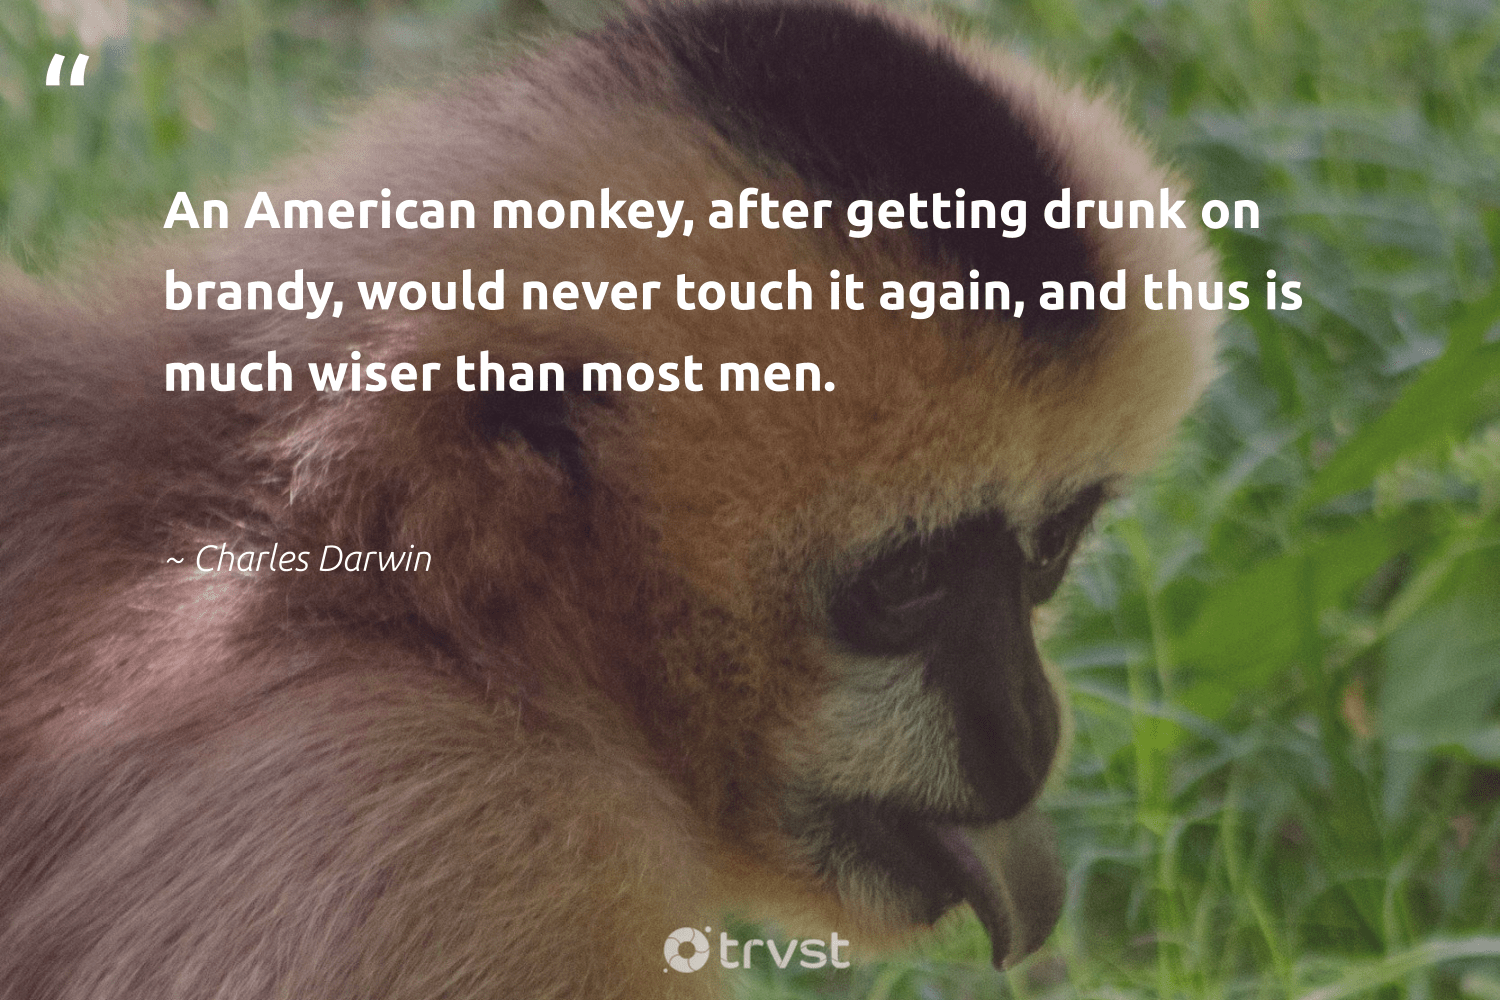 """An American monkey, after getting drunk on brandy, would never touch it again, and thus is much wiser than most men.""  - Charles Darwin #trvst #quotes #monkey #wild #thinkgreen #animalphotography #impact #splendidanimals #collectiveaction #wildlifeprotection #bethechange #majesticwildlife"